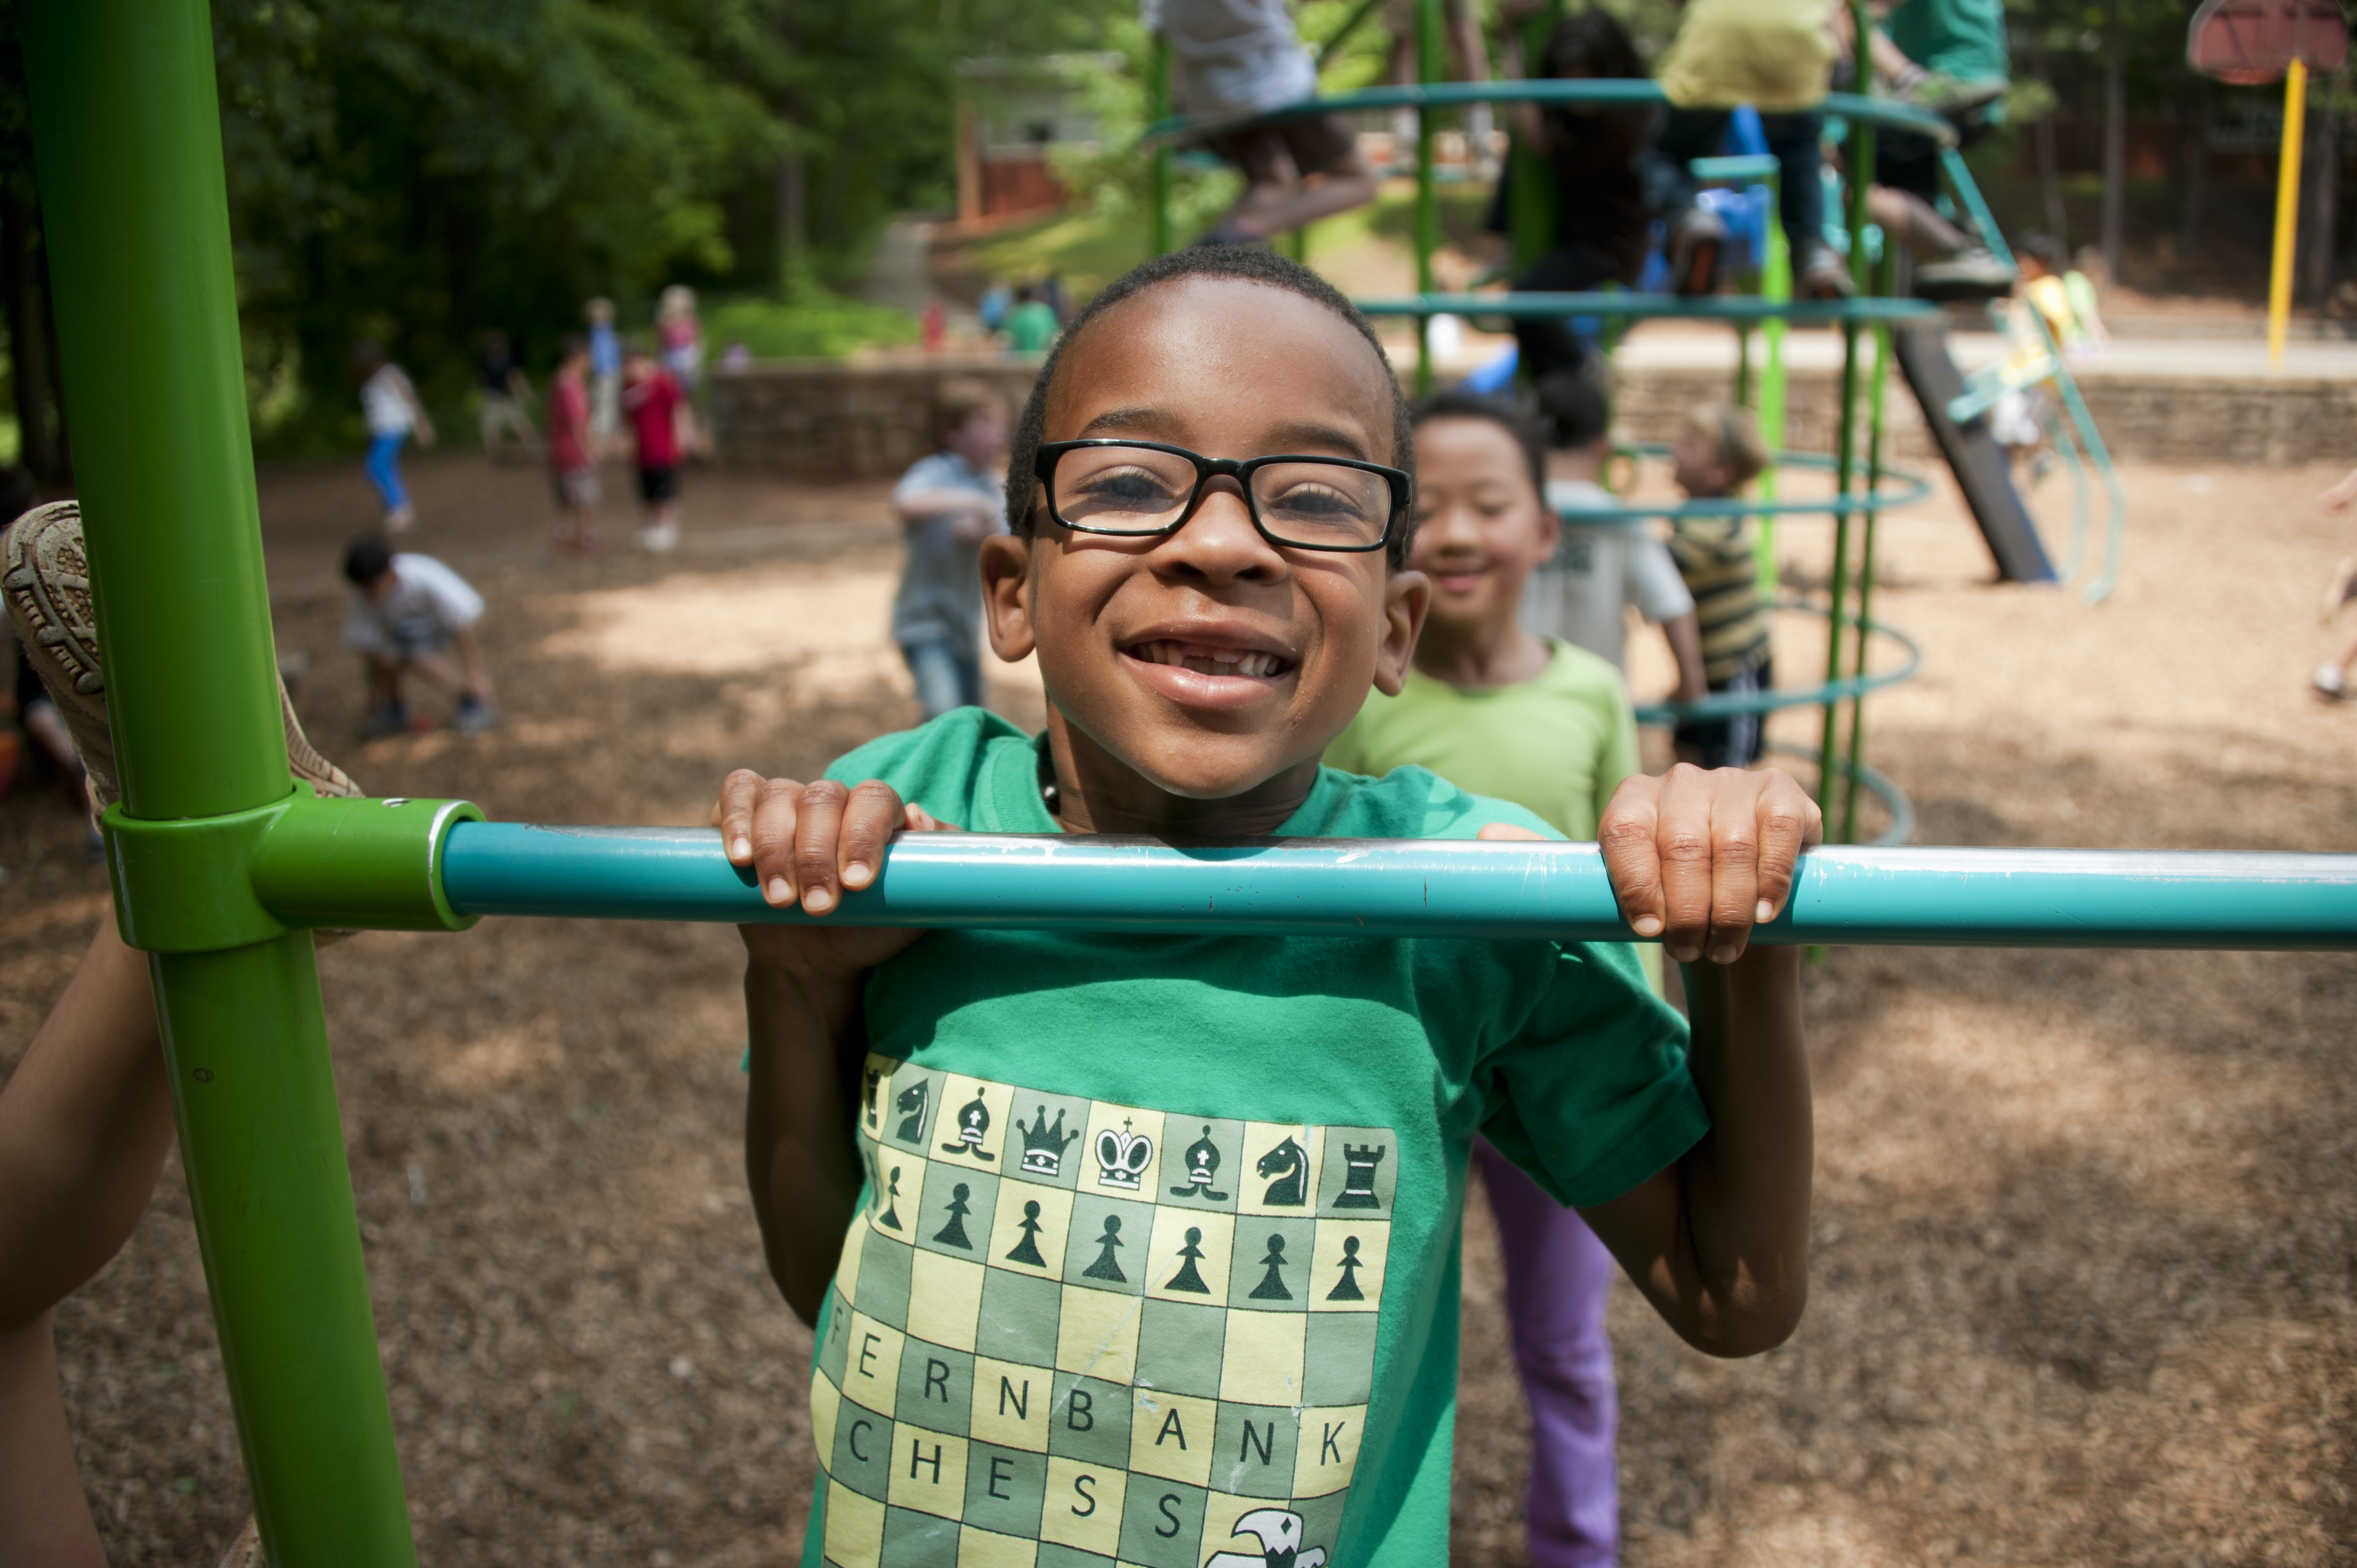 Decorative Image of a boy in a green t-shirt wearing glasses plays on a metal playground equipment.